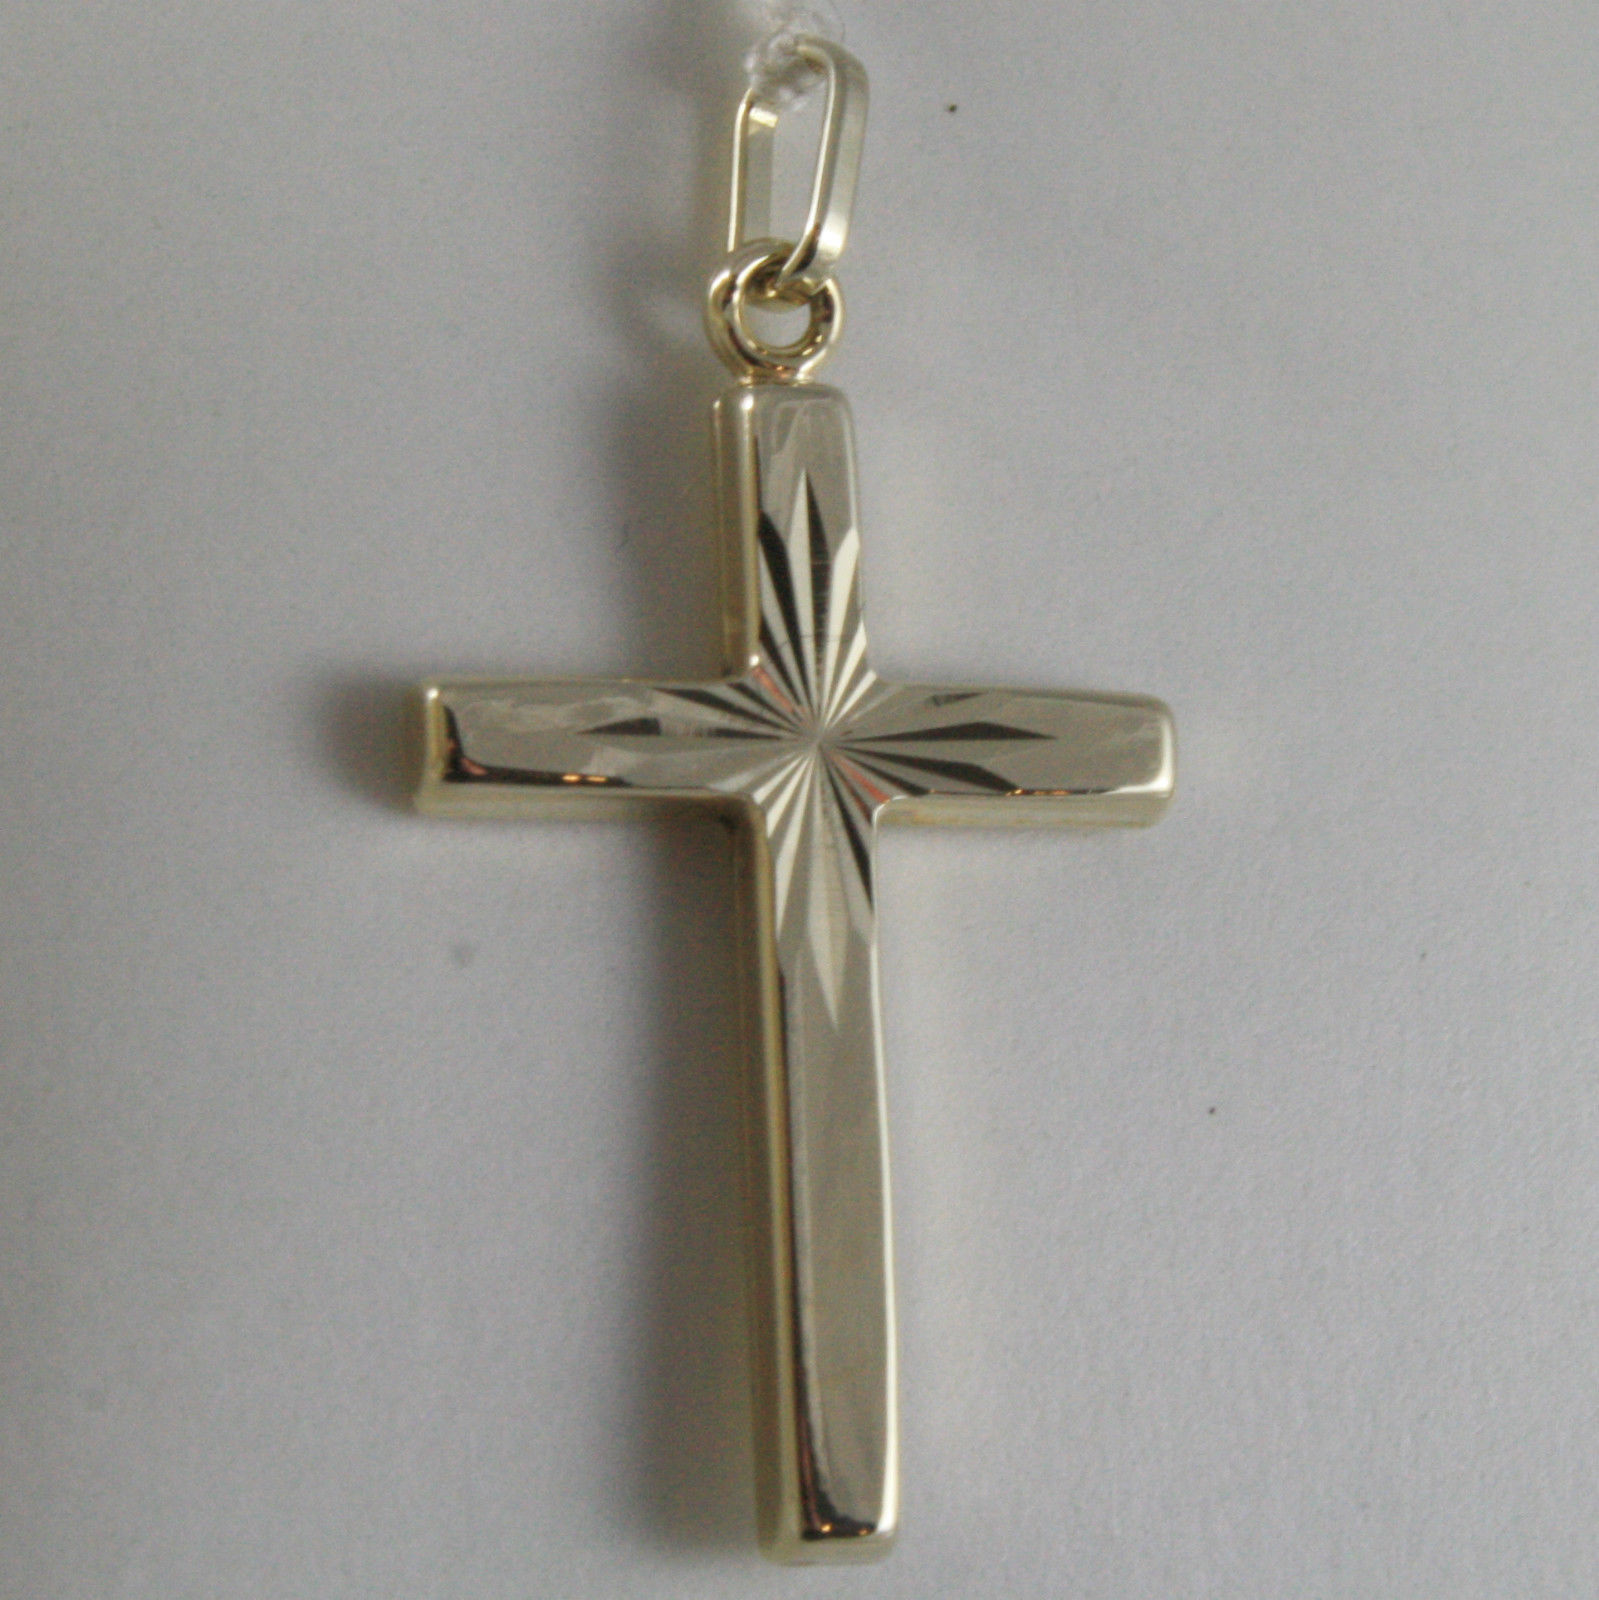 SOLID 9K YELLOW GOLD CROSS, SQUARE, STYLIZED, STAR CARVED, MADE IN ITALY, 9KT